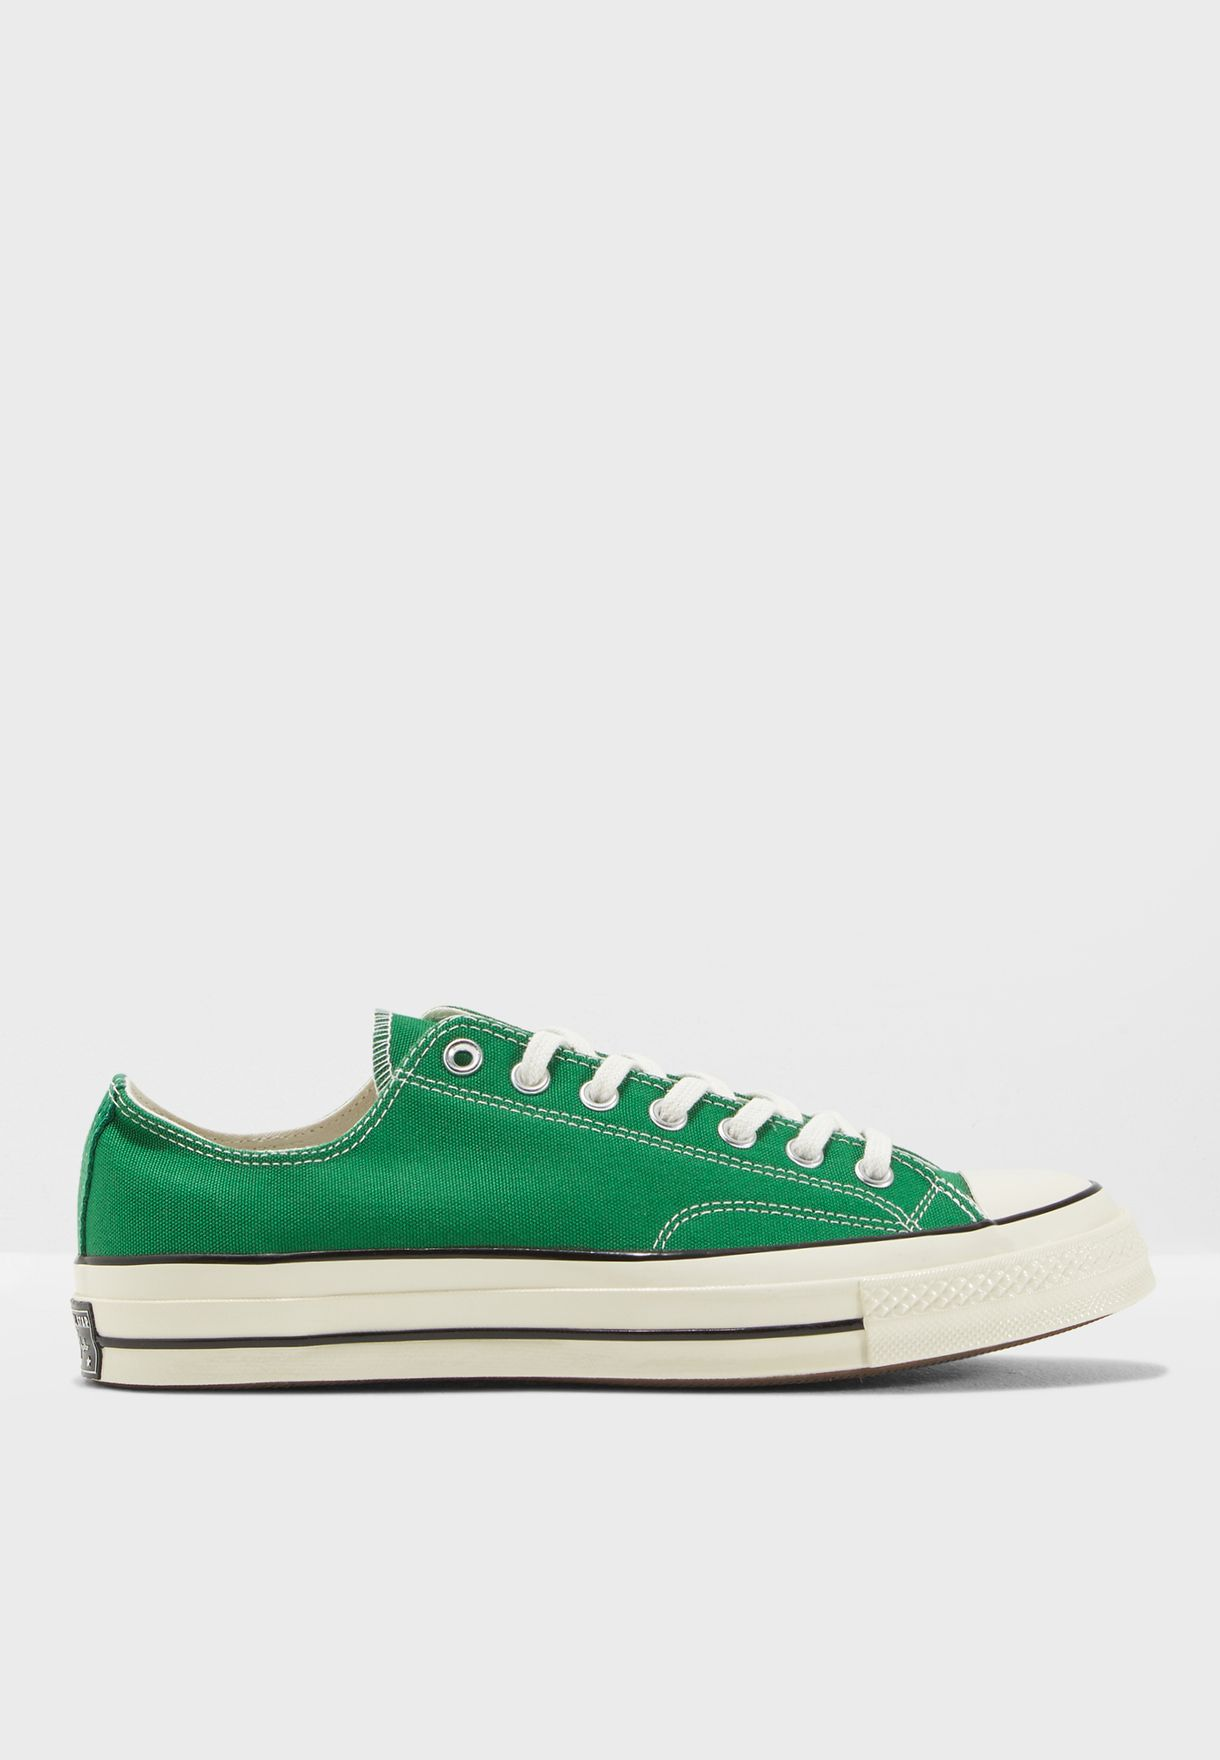 Shop Converse green Chuck Taylor All Star 1970s 161443C-302 for Men ... 13d0a339f